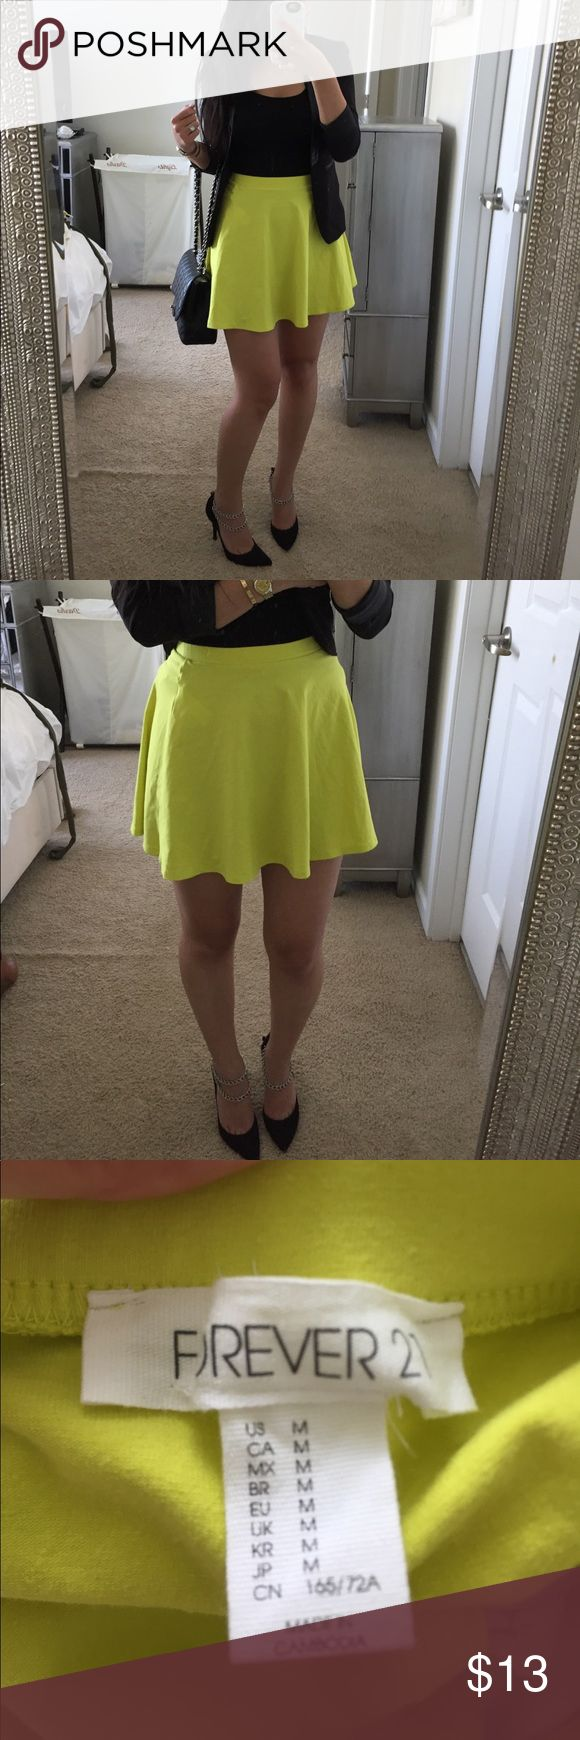 NEON Yellow flare skirt. Condition: Very Good. Damages: None. Detail: Add some color to your wardrobe. Size: Fits true to size. Note:  **Make a reasonable offer!! Bundle 3+ items to save $$!** Thank you for stopping by! =) gabagaba88 Forever 21 Skirts Circle & Skater